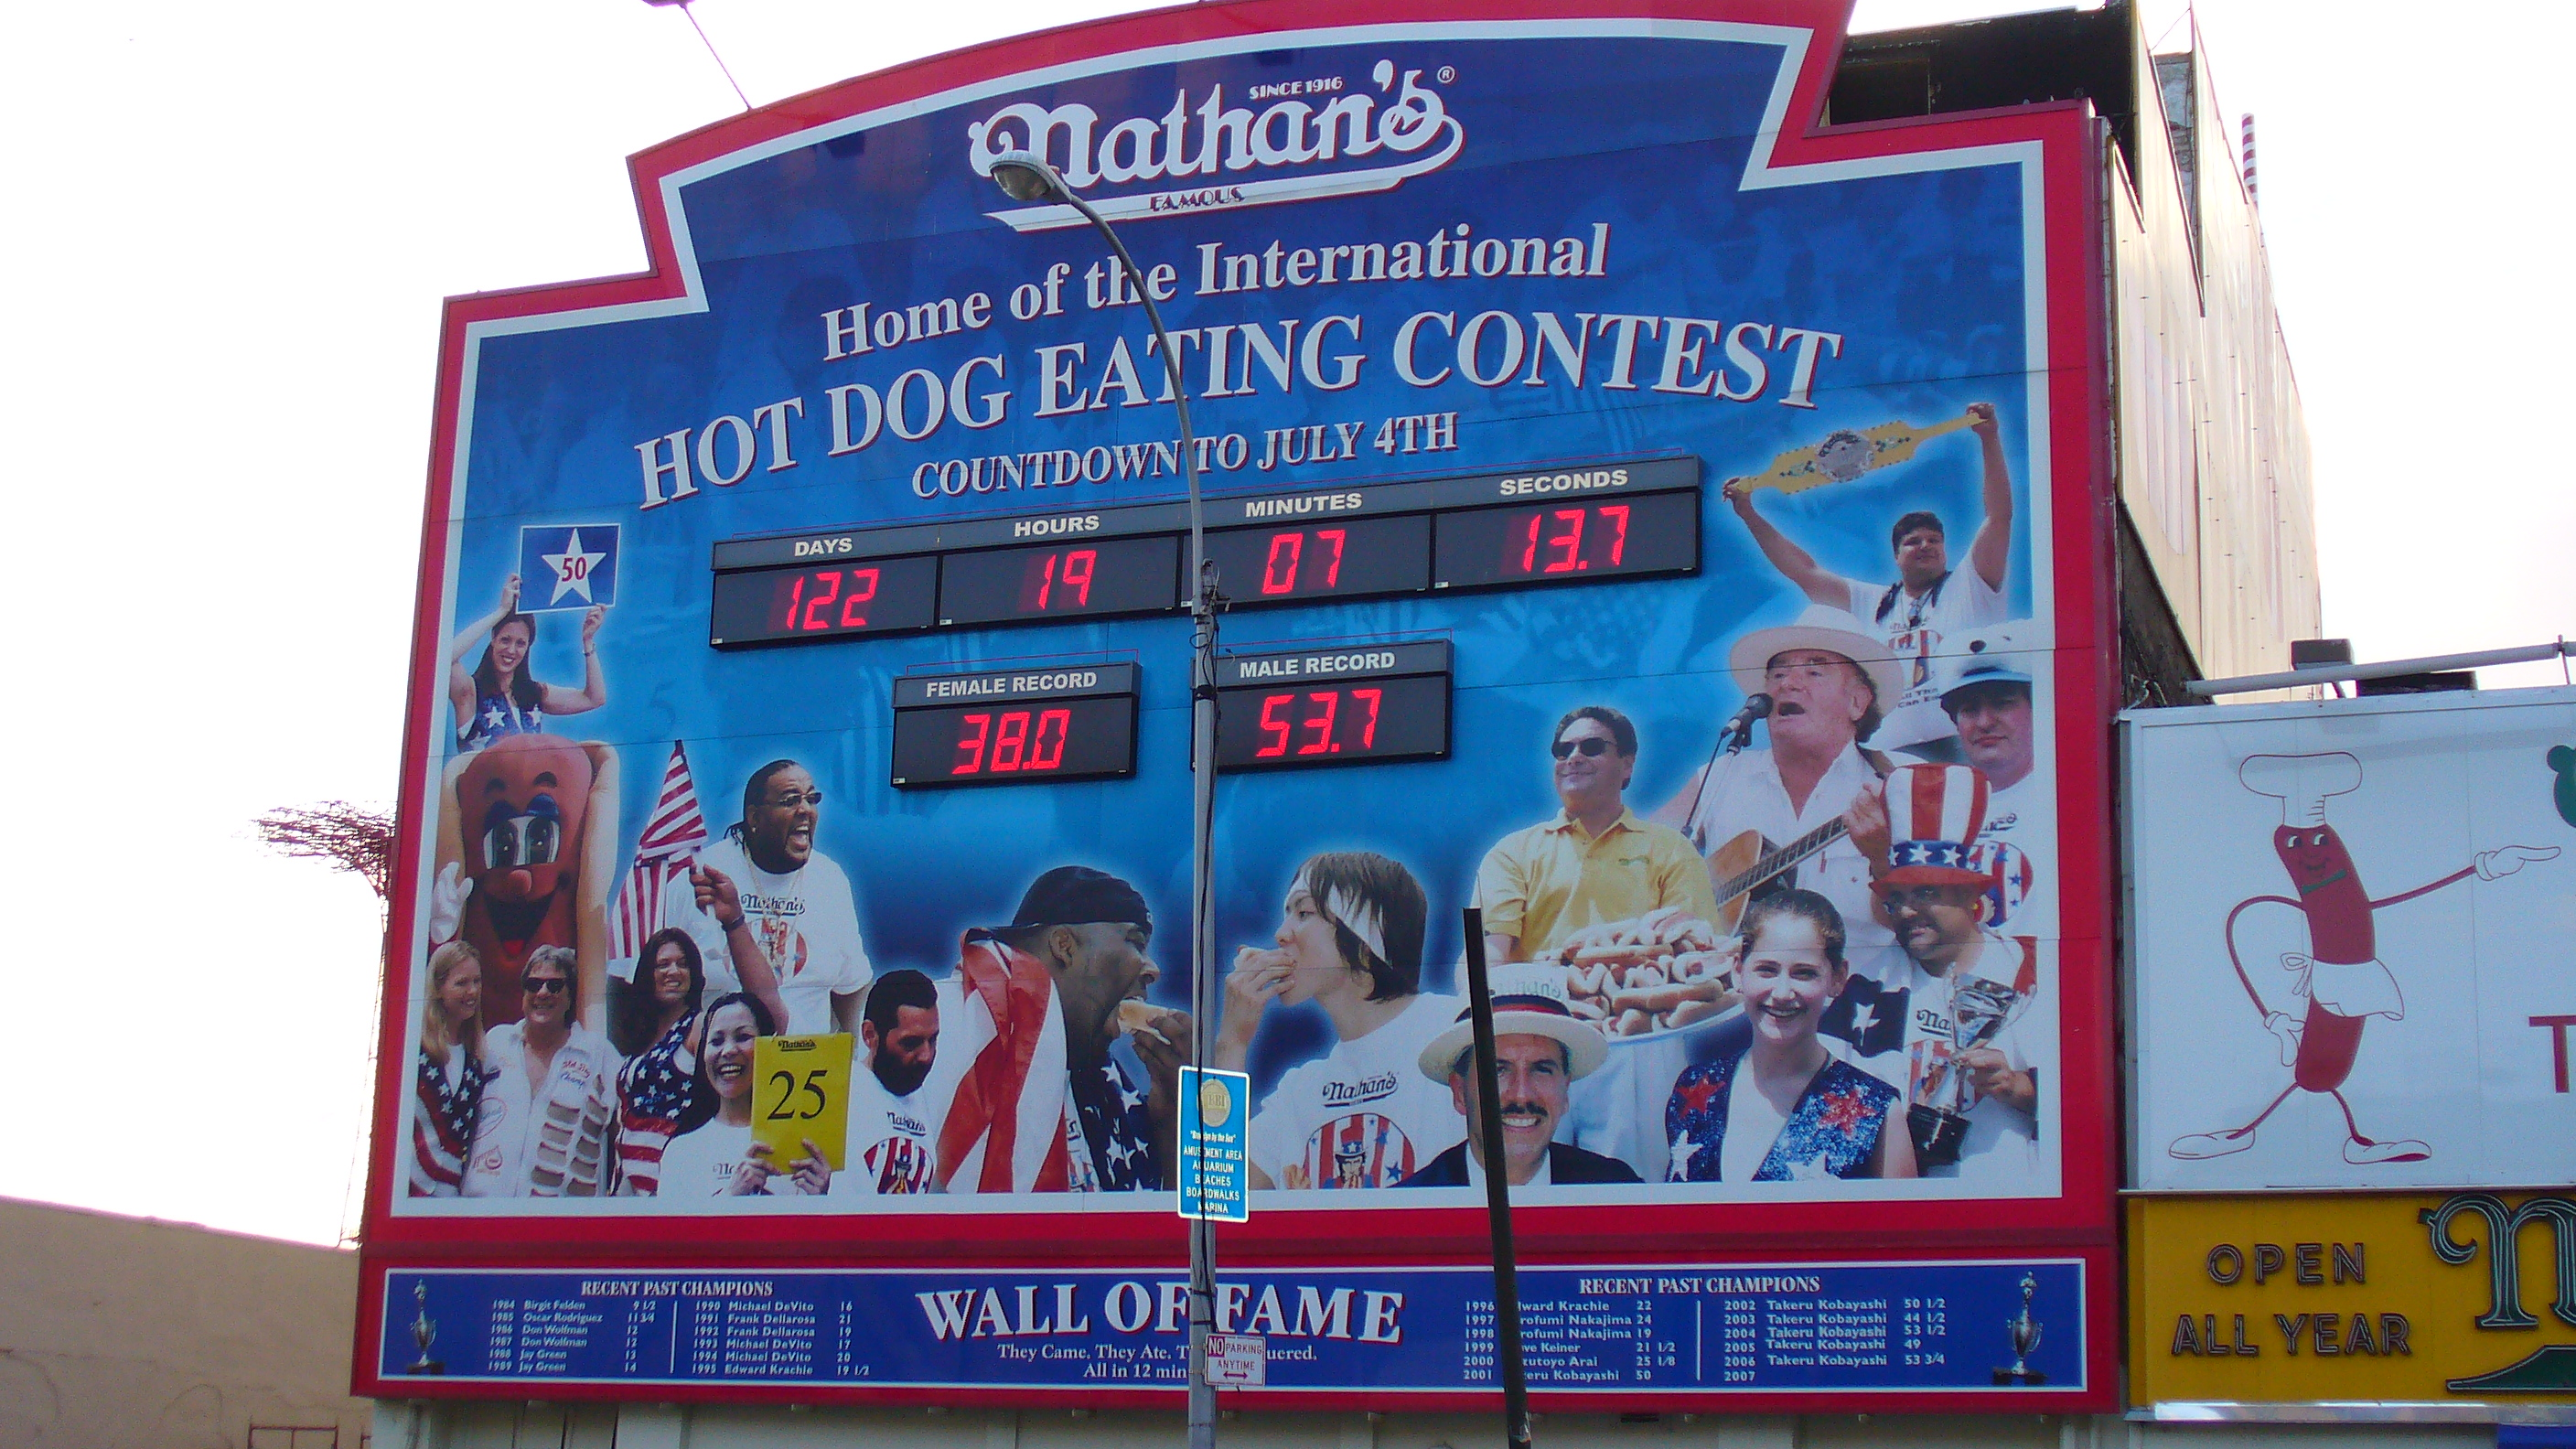 Nathan's Wall of Fame of contest winners, 2006.